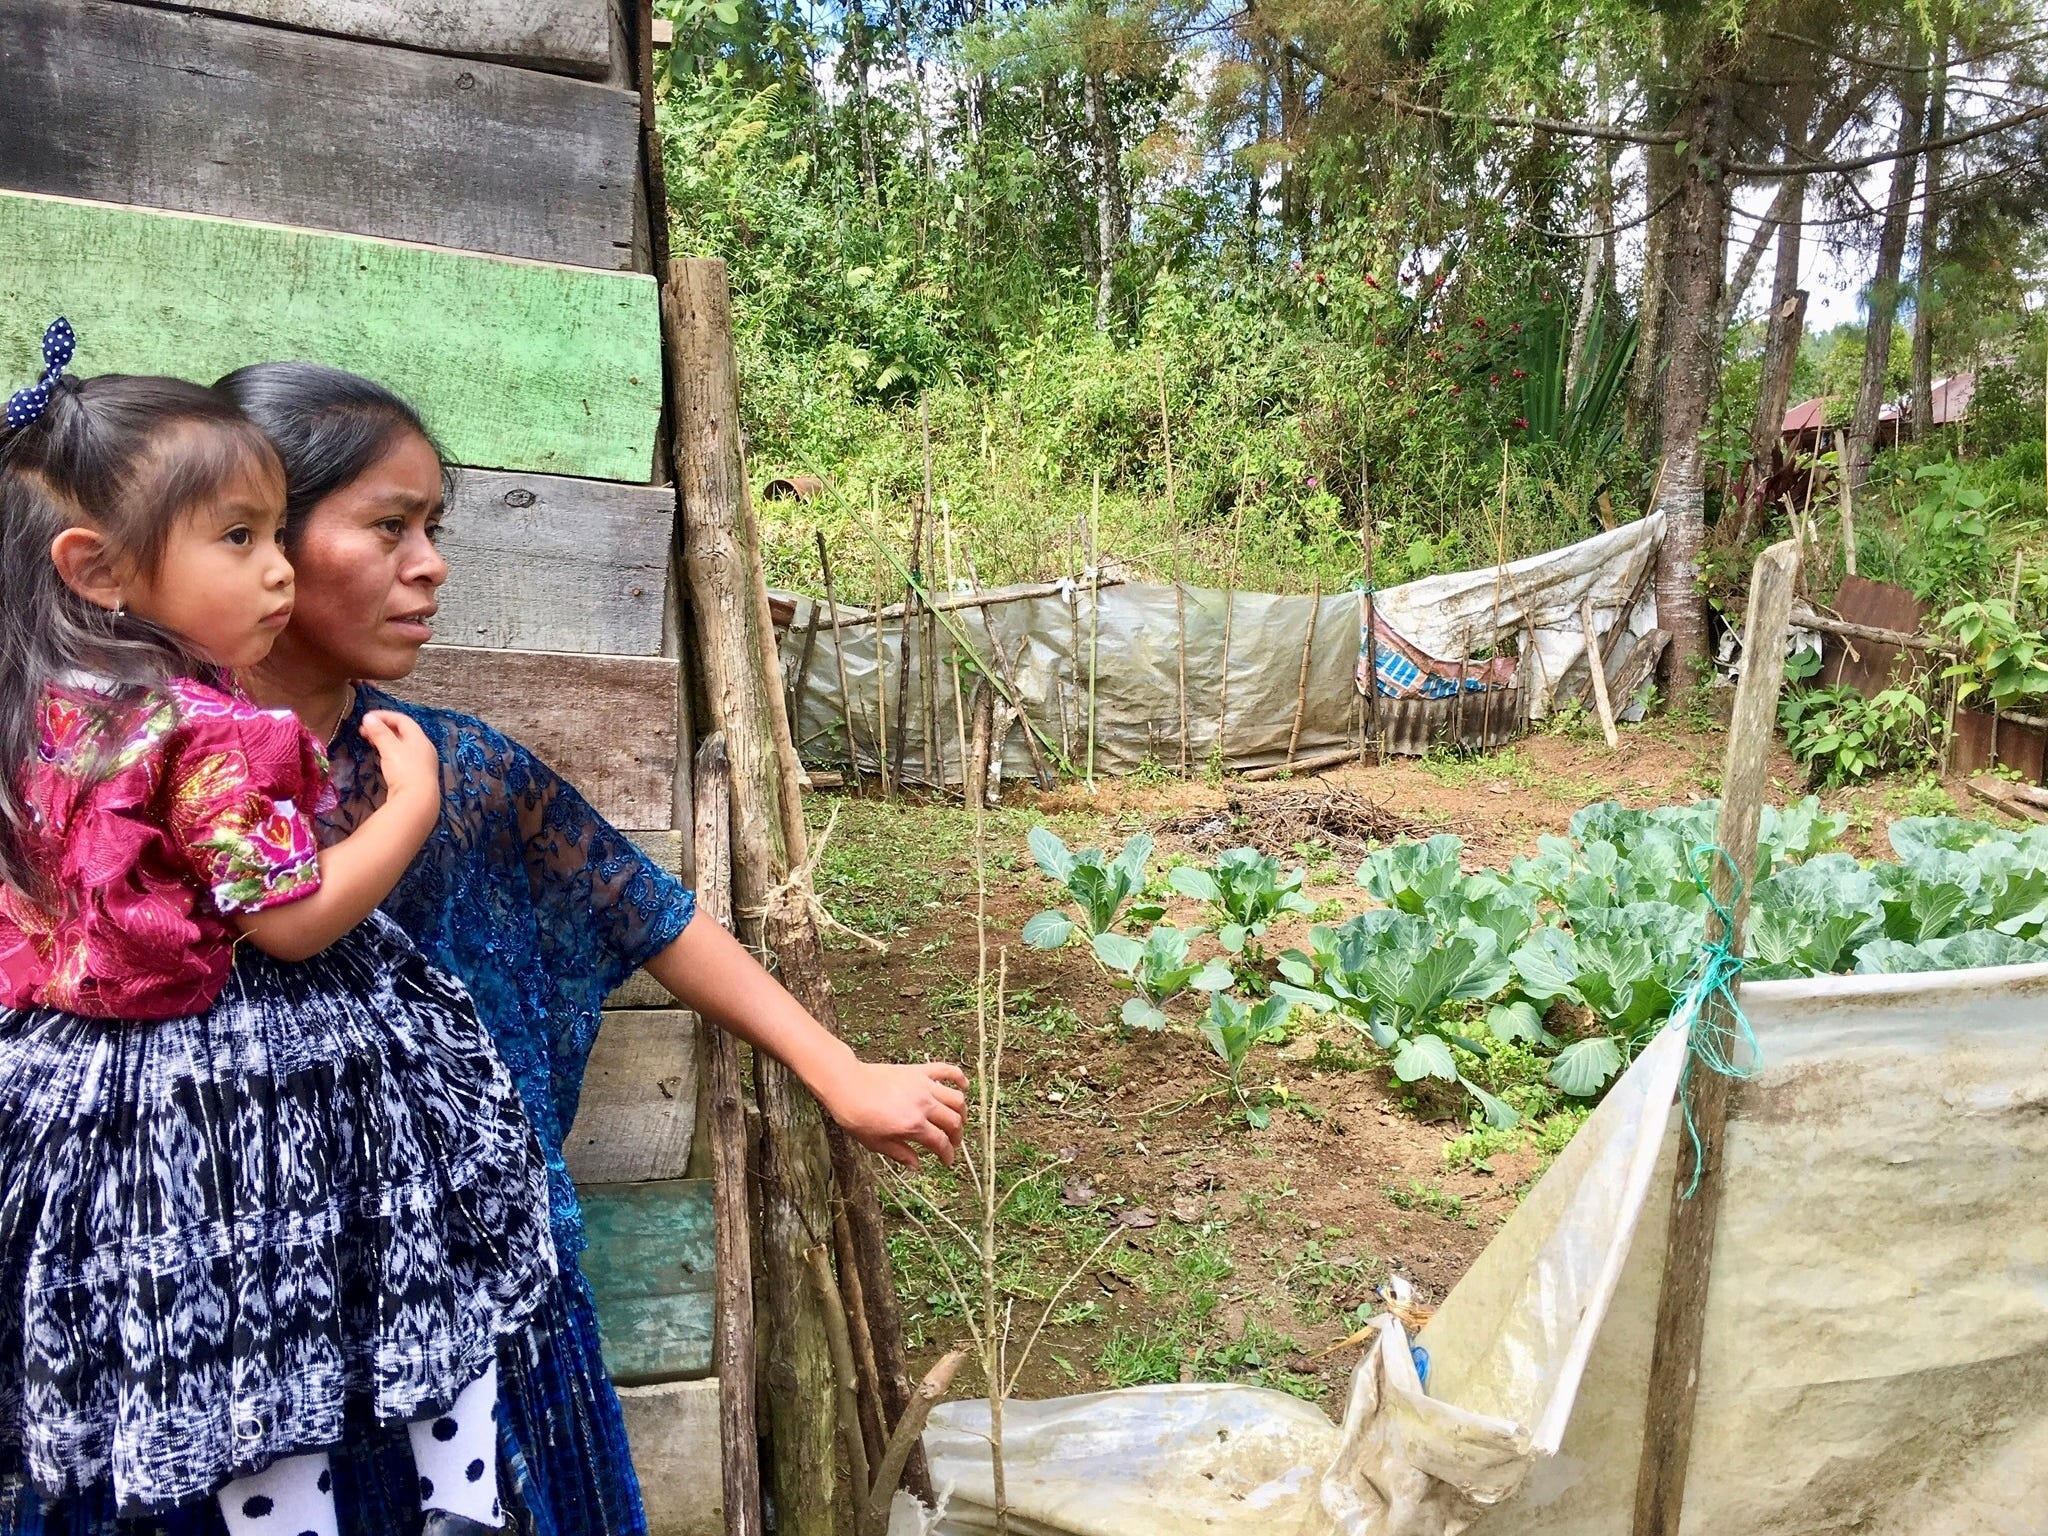 Maria, a single mother in the Chioya community in Guatemala, invites us to see her garden of cabbage she has learned to plant and harvest through a partnership with Food for the Hungry.